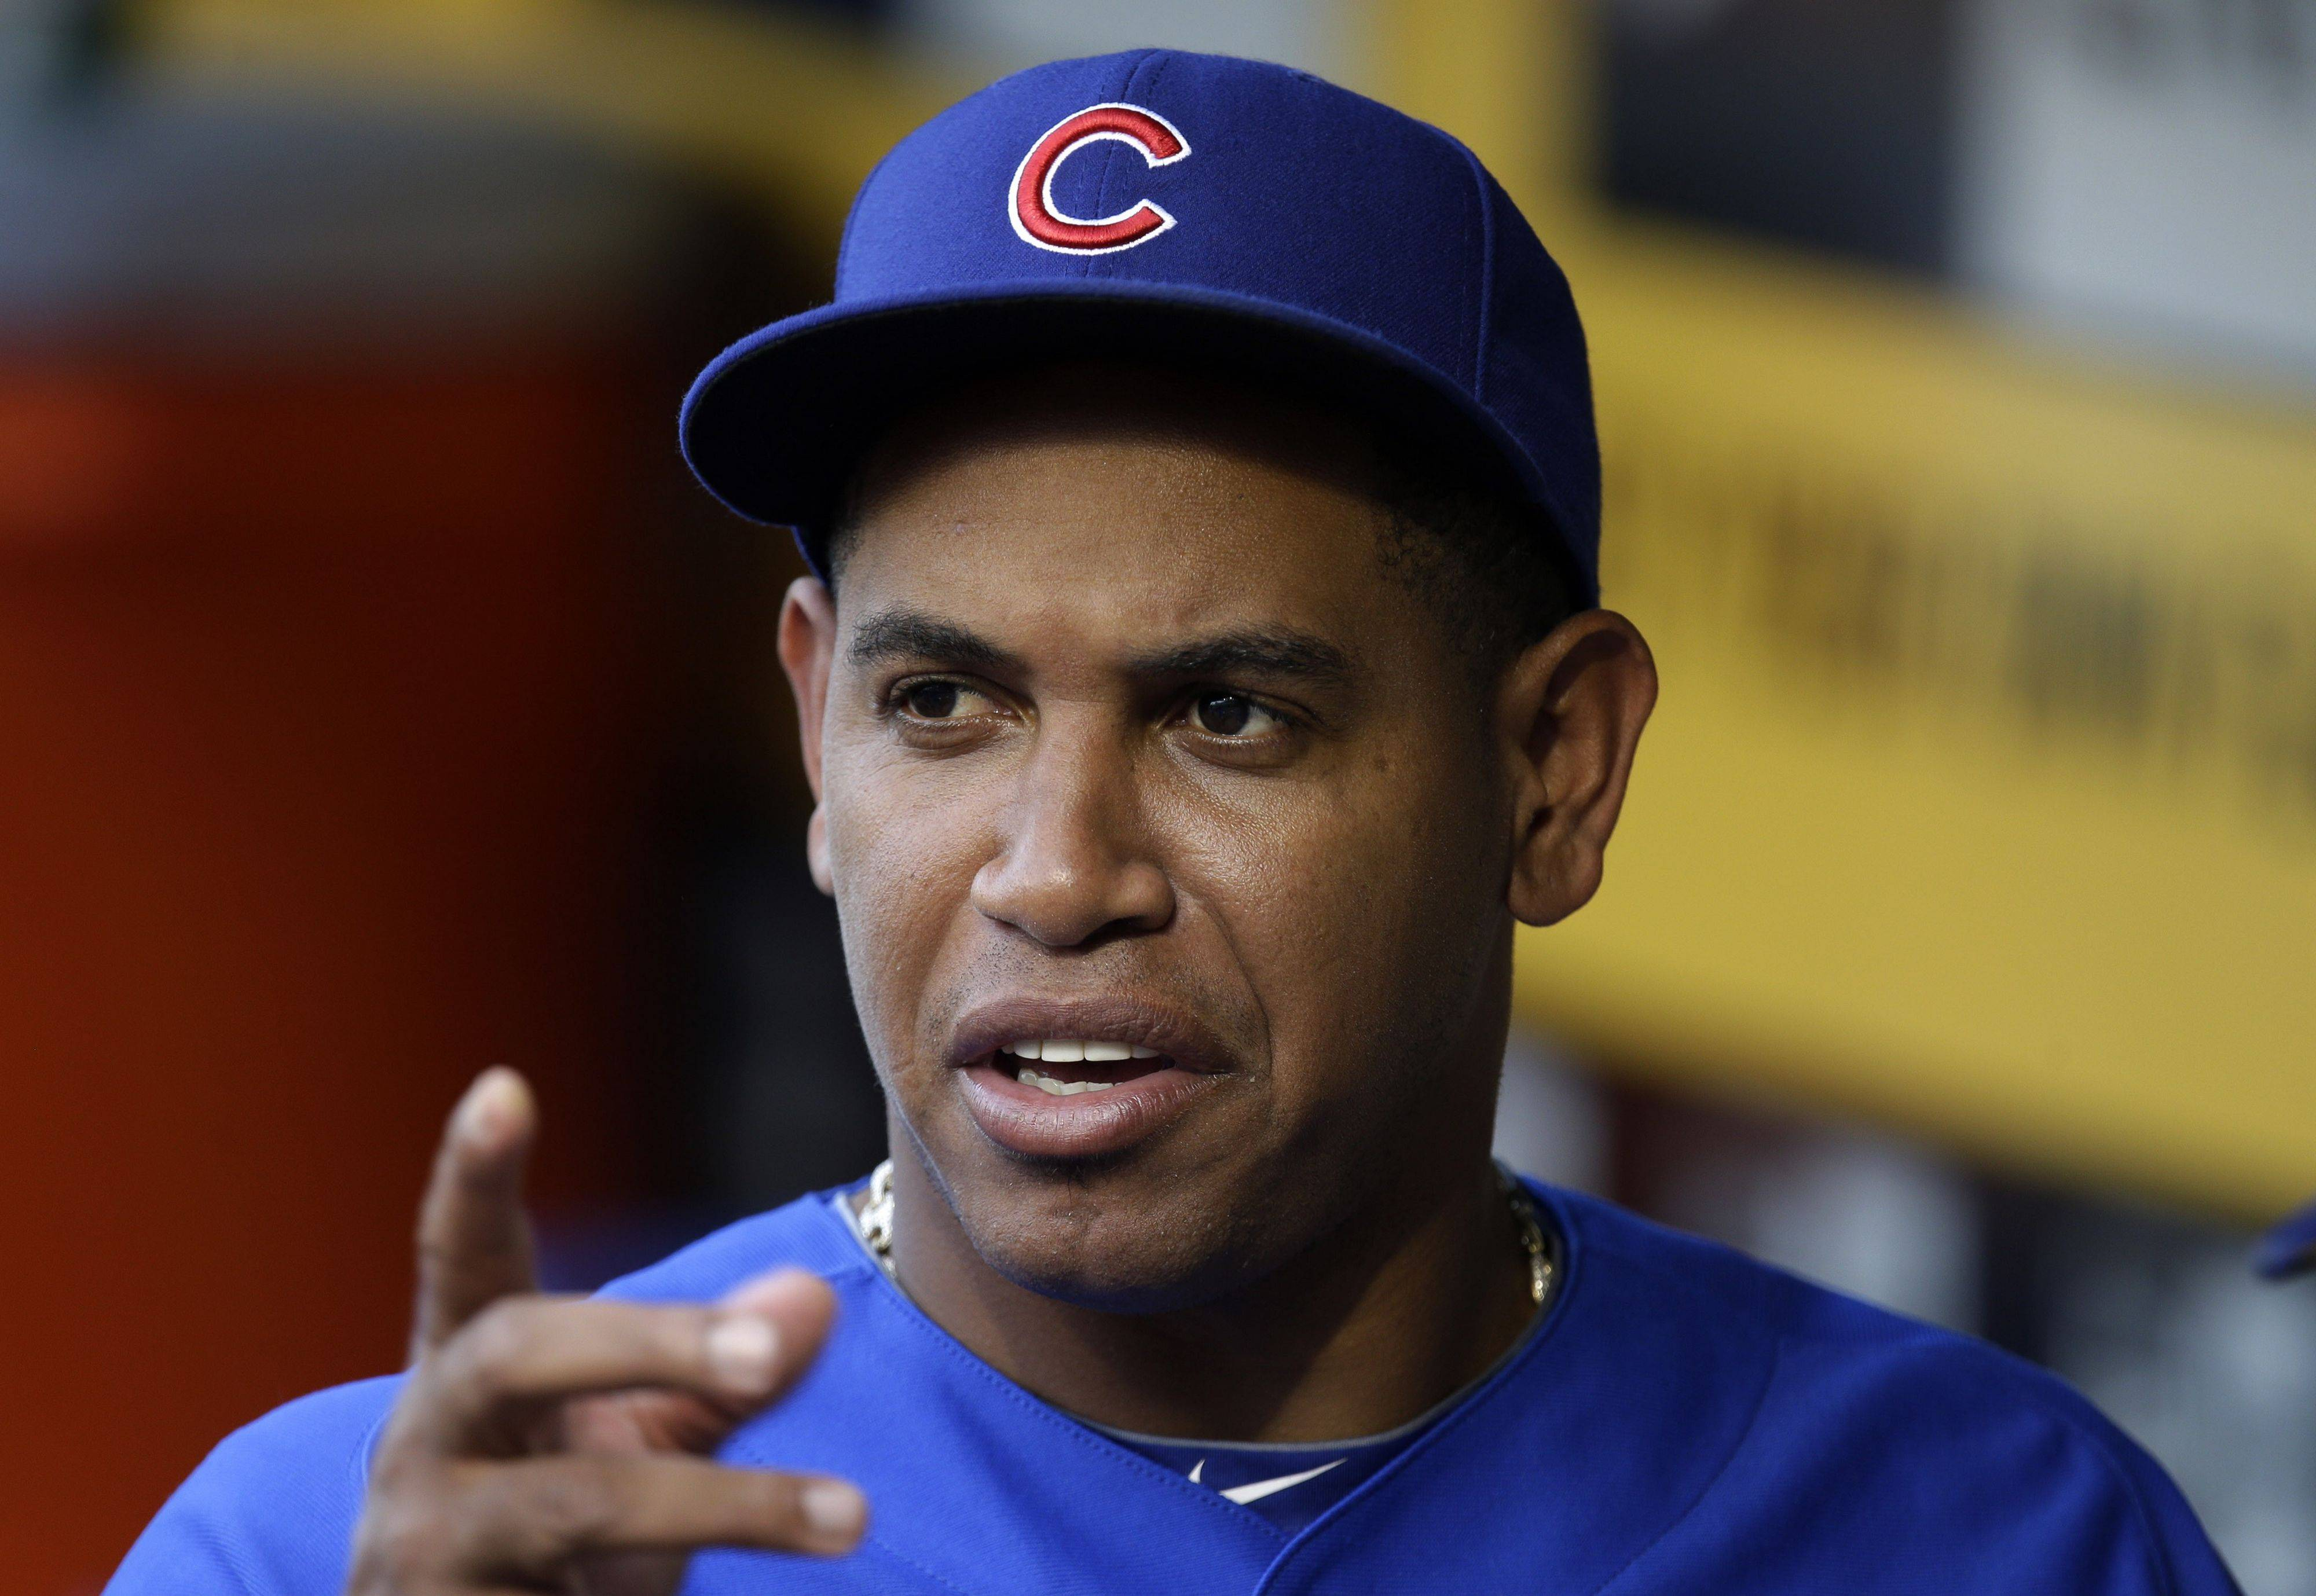 Cubs finally cut ties with Marmol